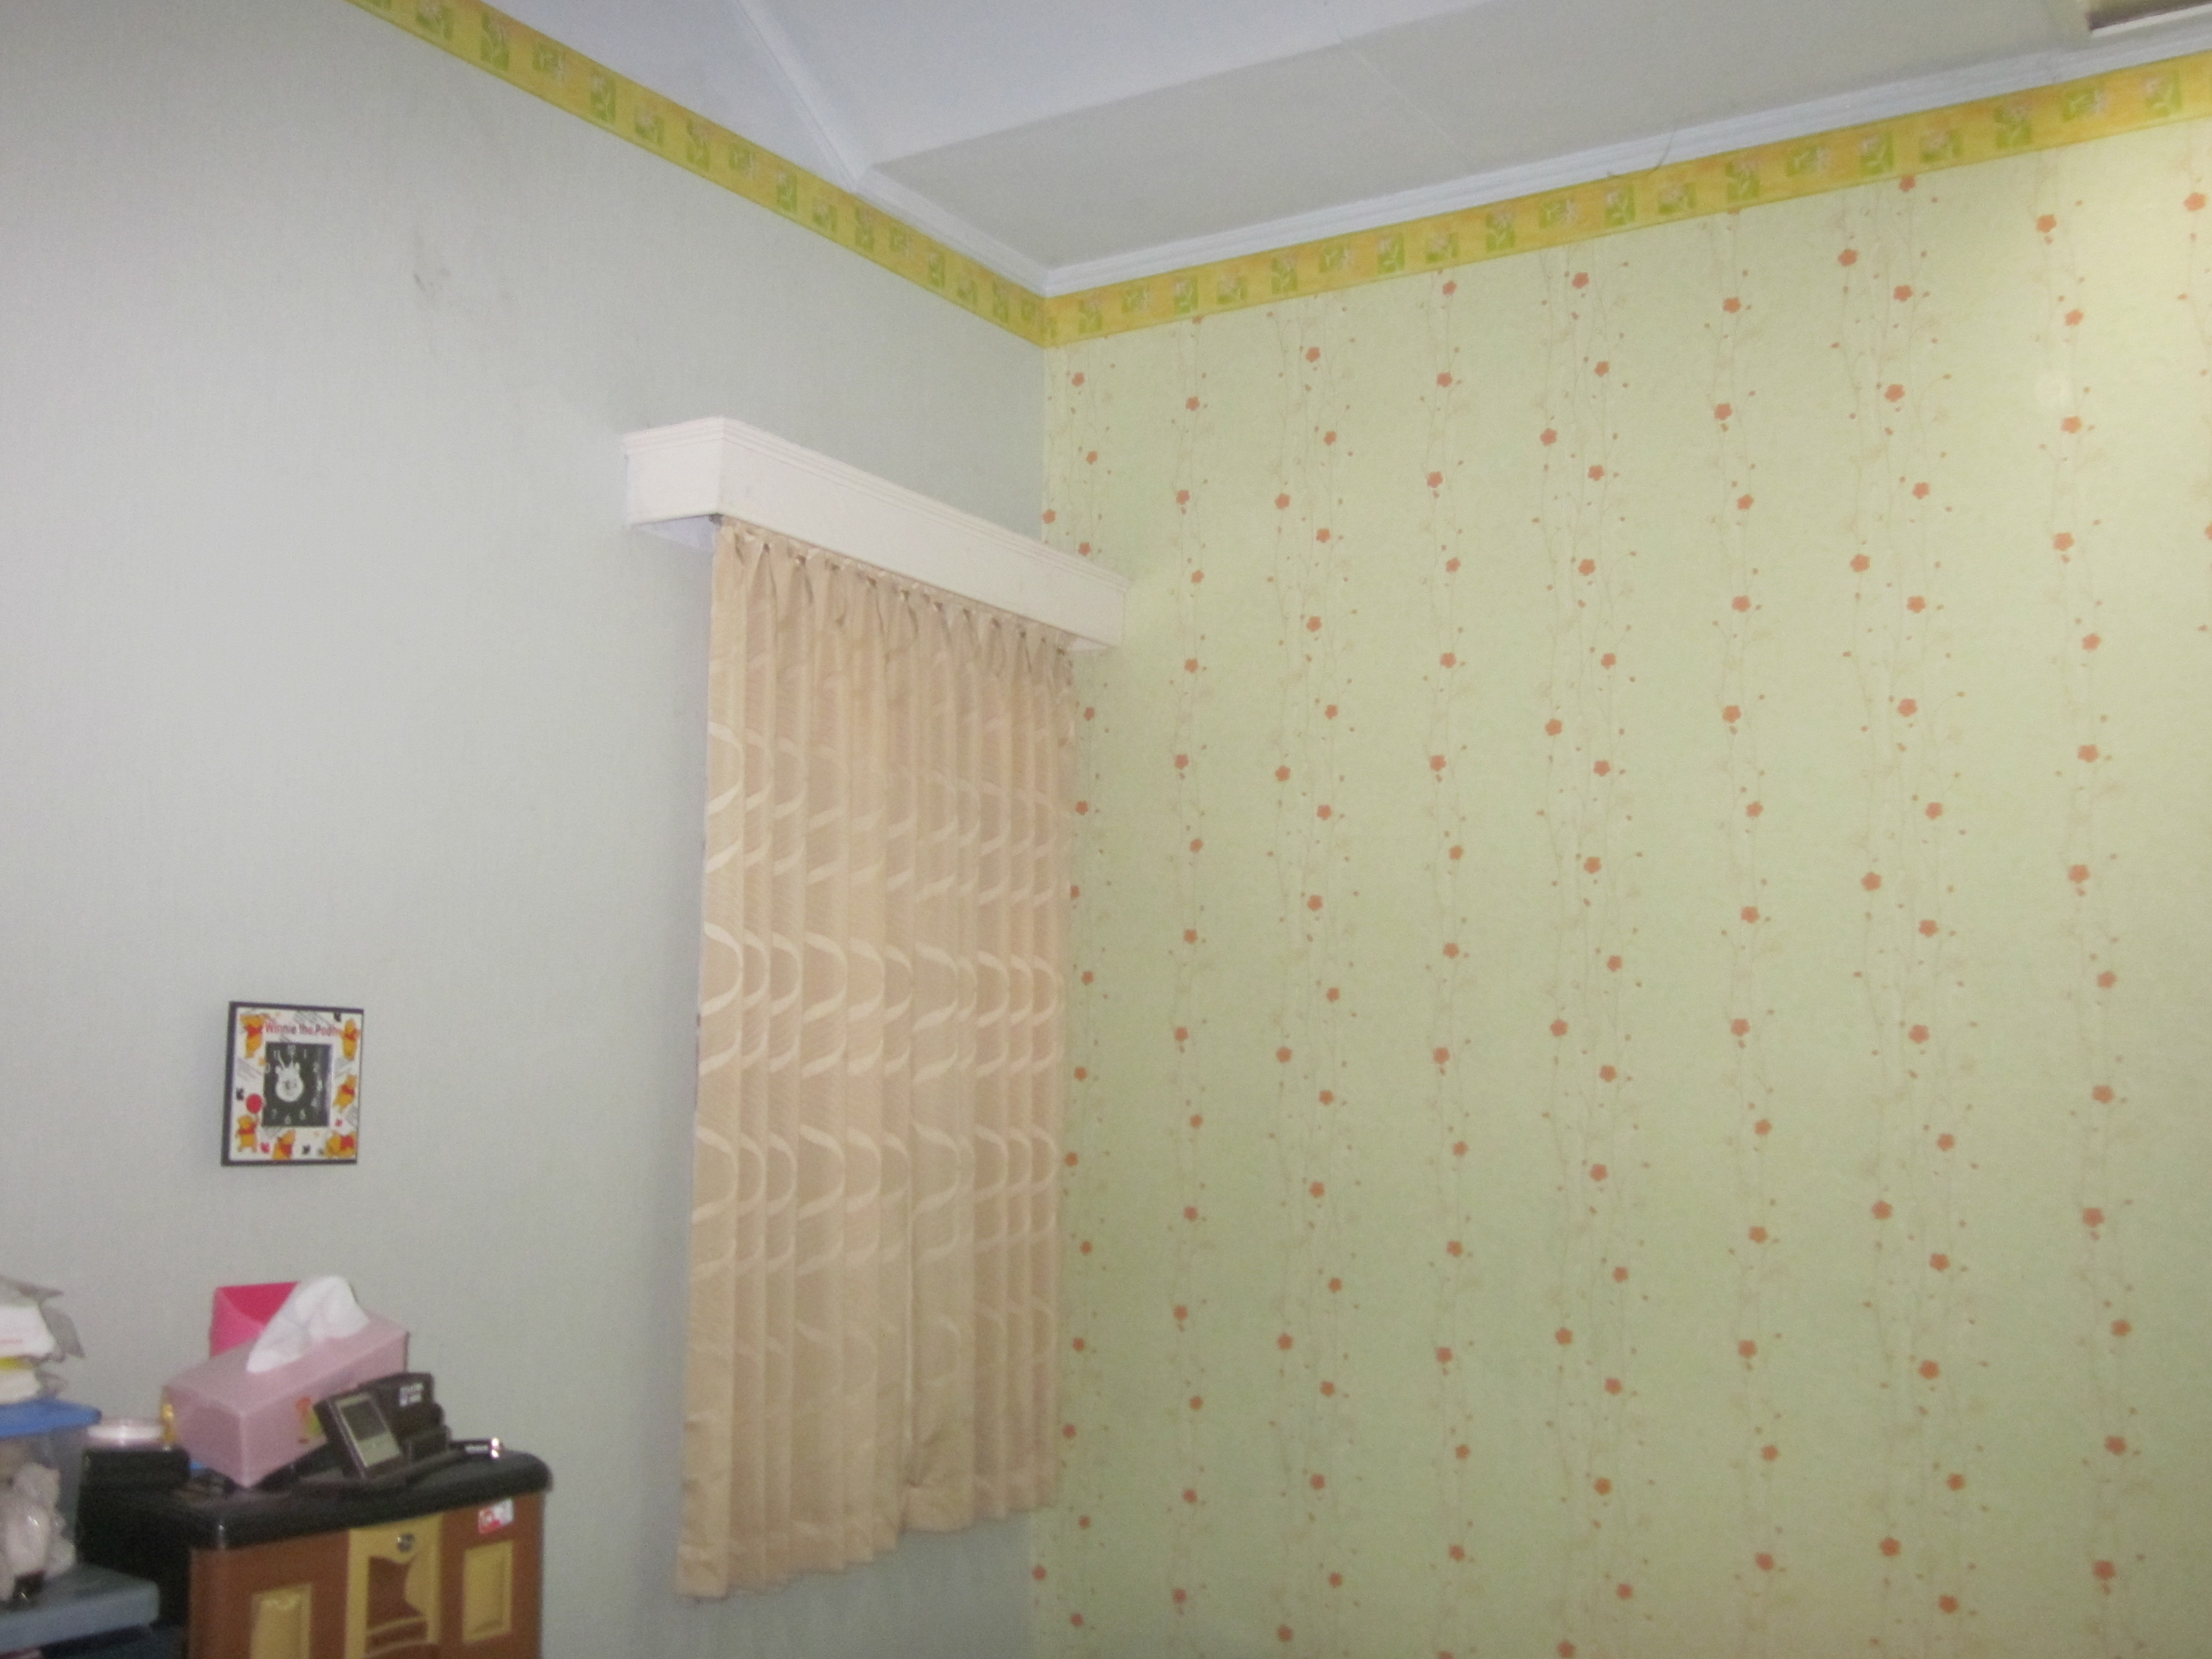 Kamar Hello Kitty Minimalis Wallpaper Dinding Malang | Wallpaper Malang | Wallpaper